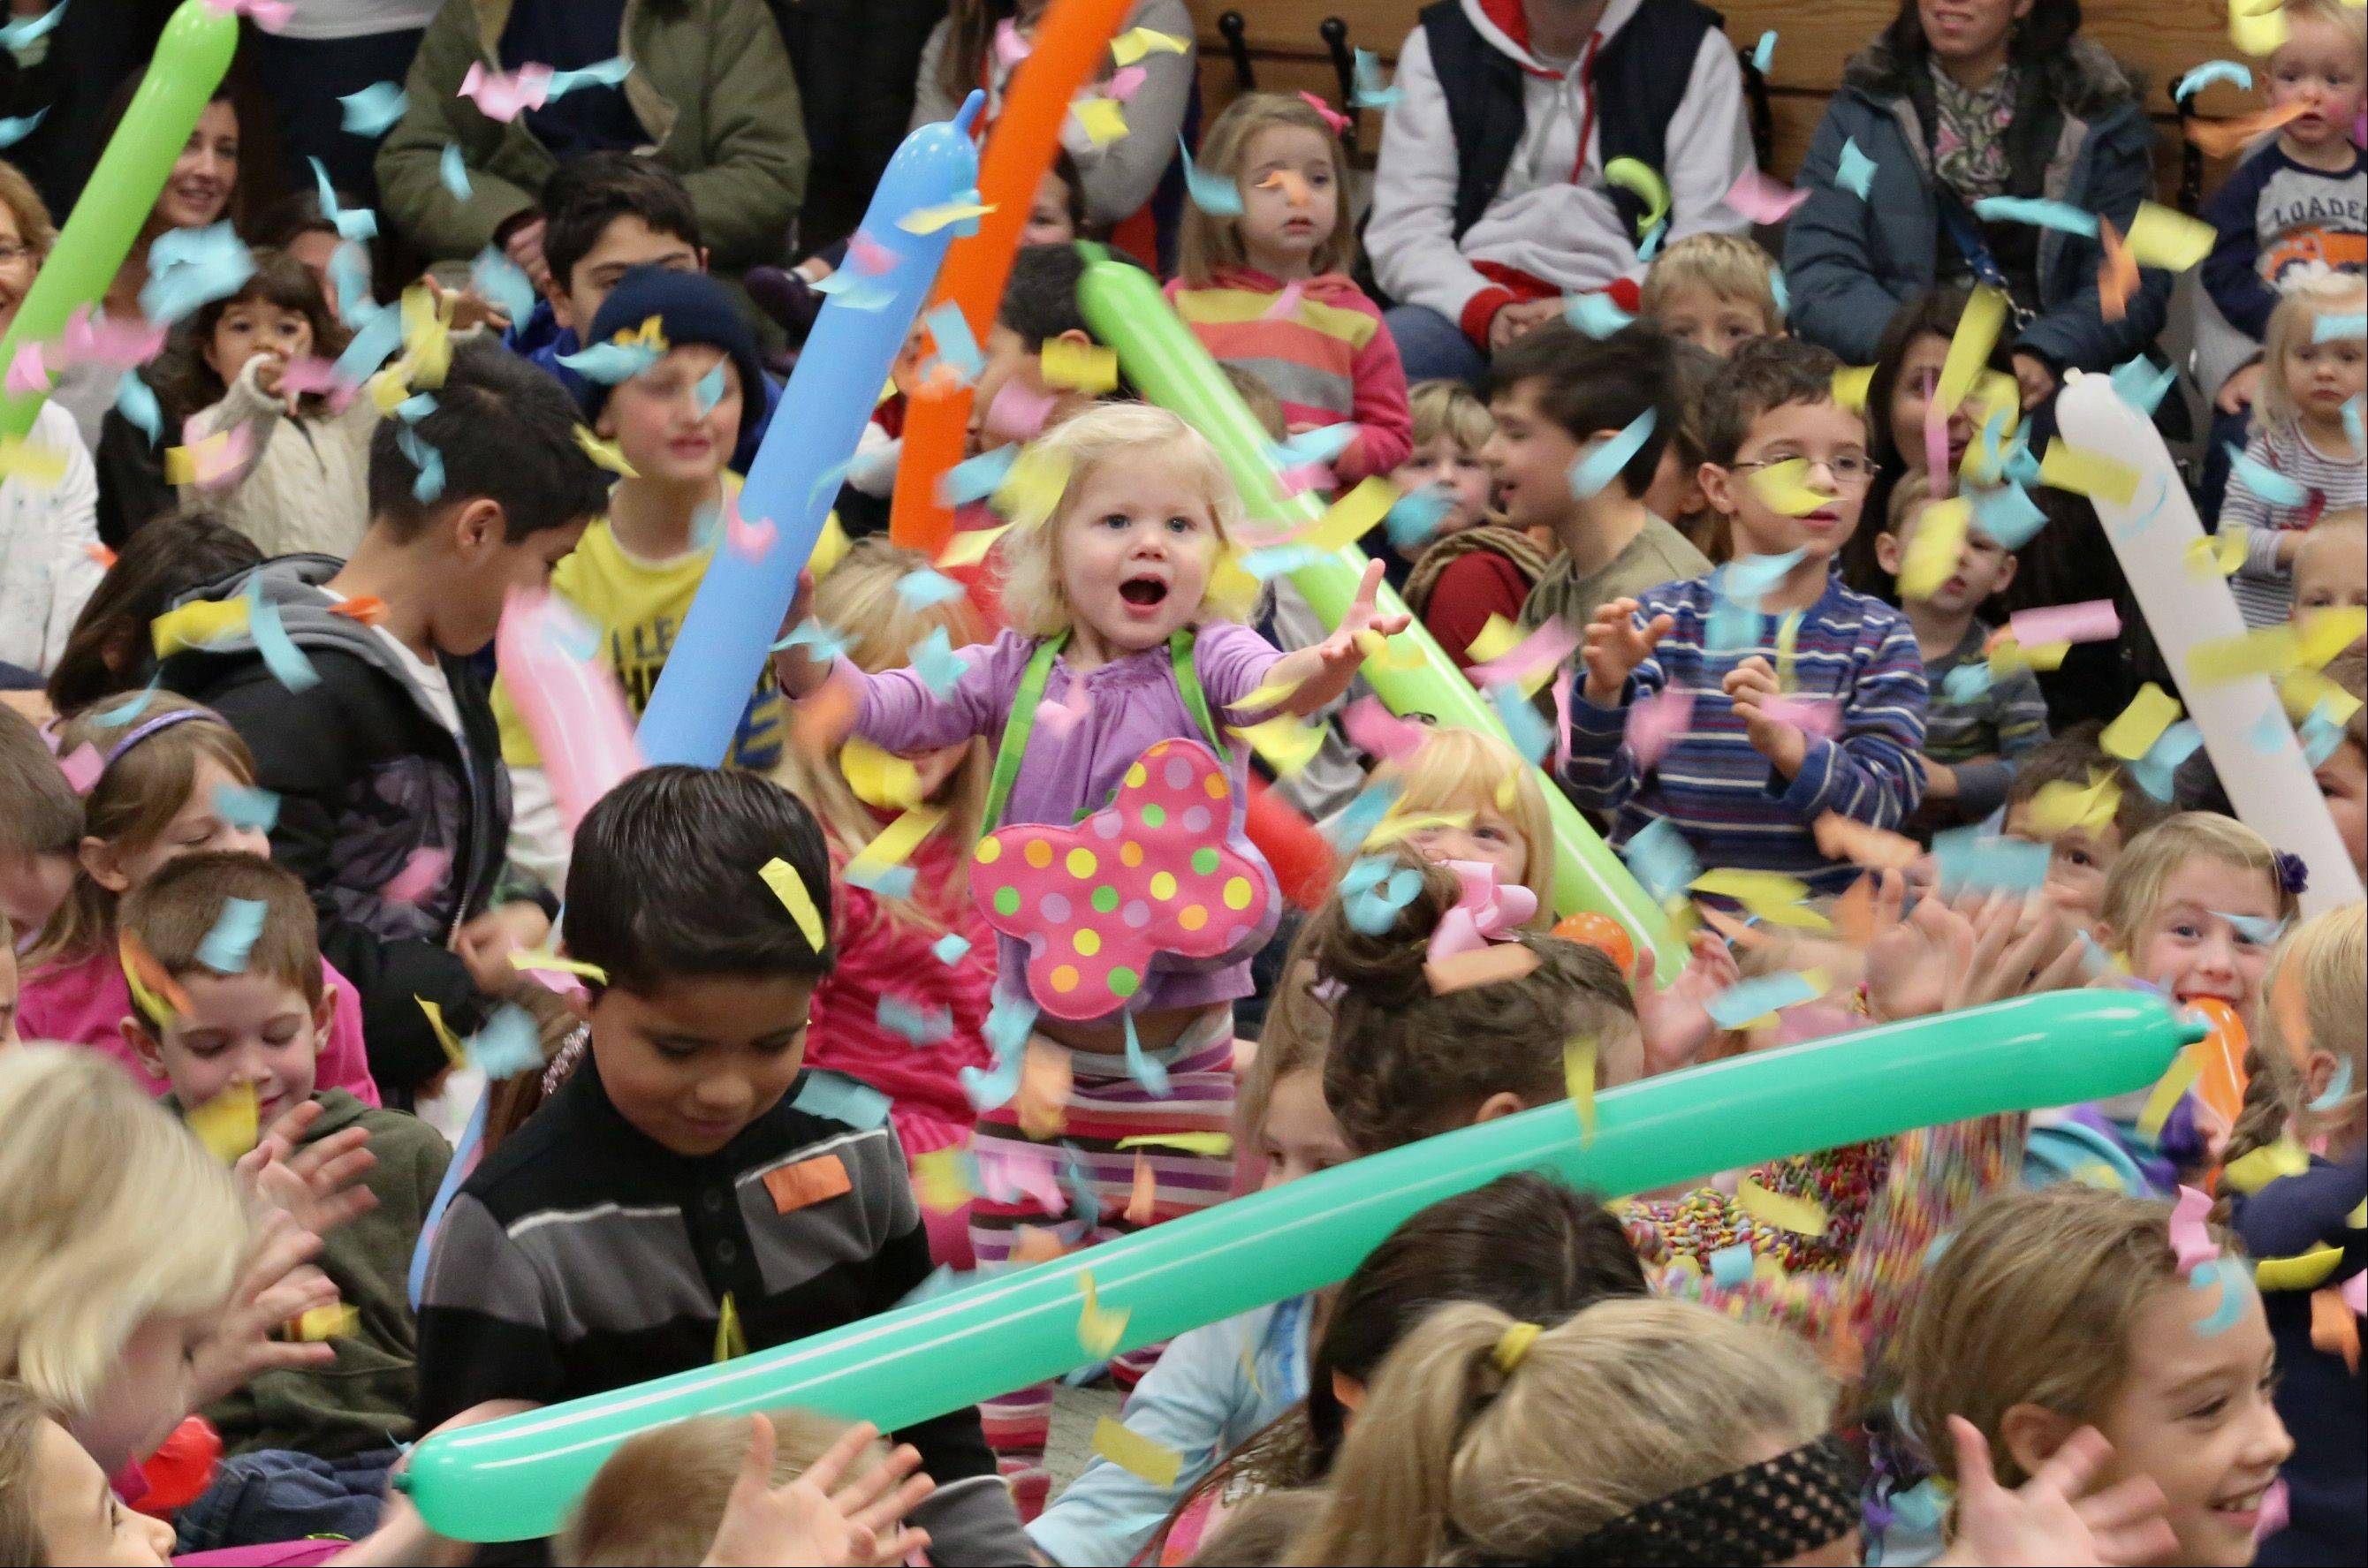 Two-year-old Emilie Patterson, center, of Geneva, is in complete awe of the �balloon barrage� at the end of the Smarty Pants Big Balloon Show Tuesday at the Geneva Public Library.